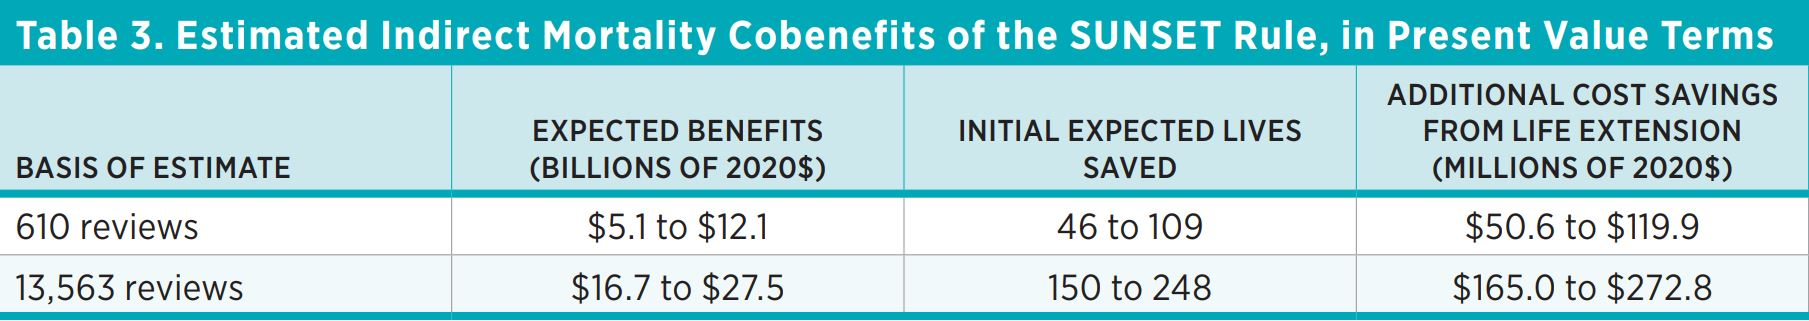 Table 3. Estimated Indirect Mortality Cobenefits of the SUNSET Rule, in Present Value Terms  Basis of Estimate  Expected Benefits (Billions of 2020$)  Initial Expected Lives Saved  Additional Cost Savings from Life Extension (Millions of 2020$)  610 revie